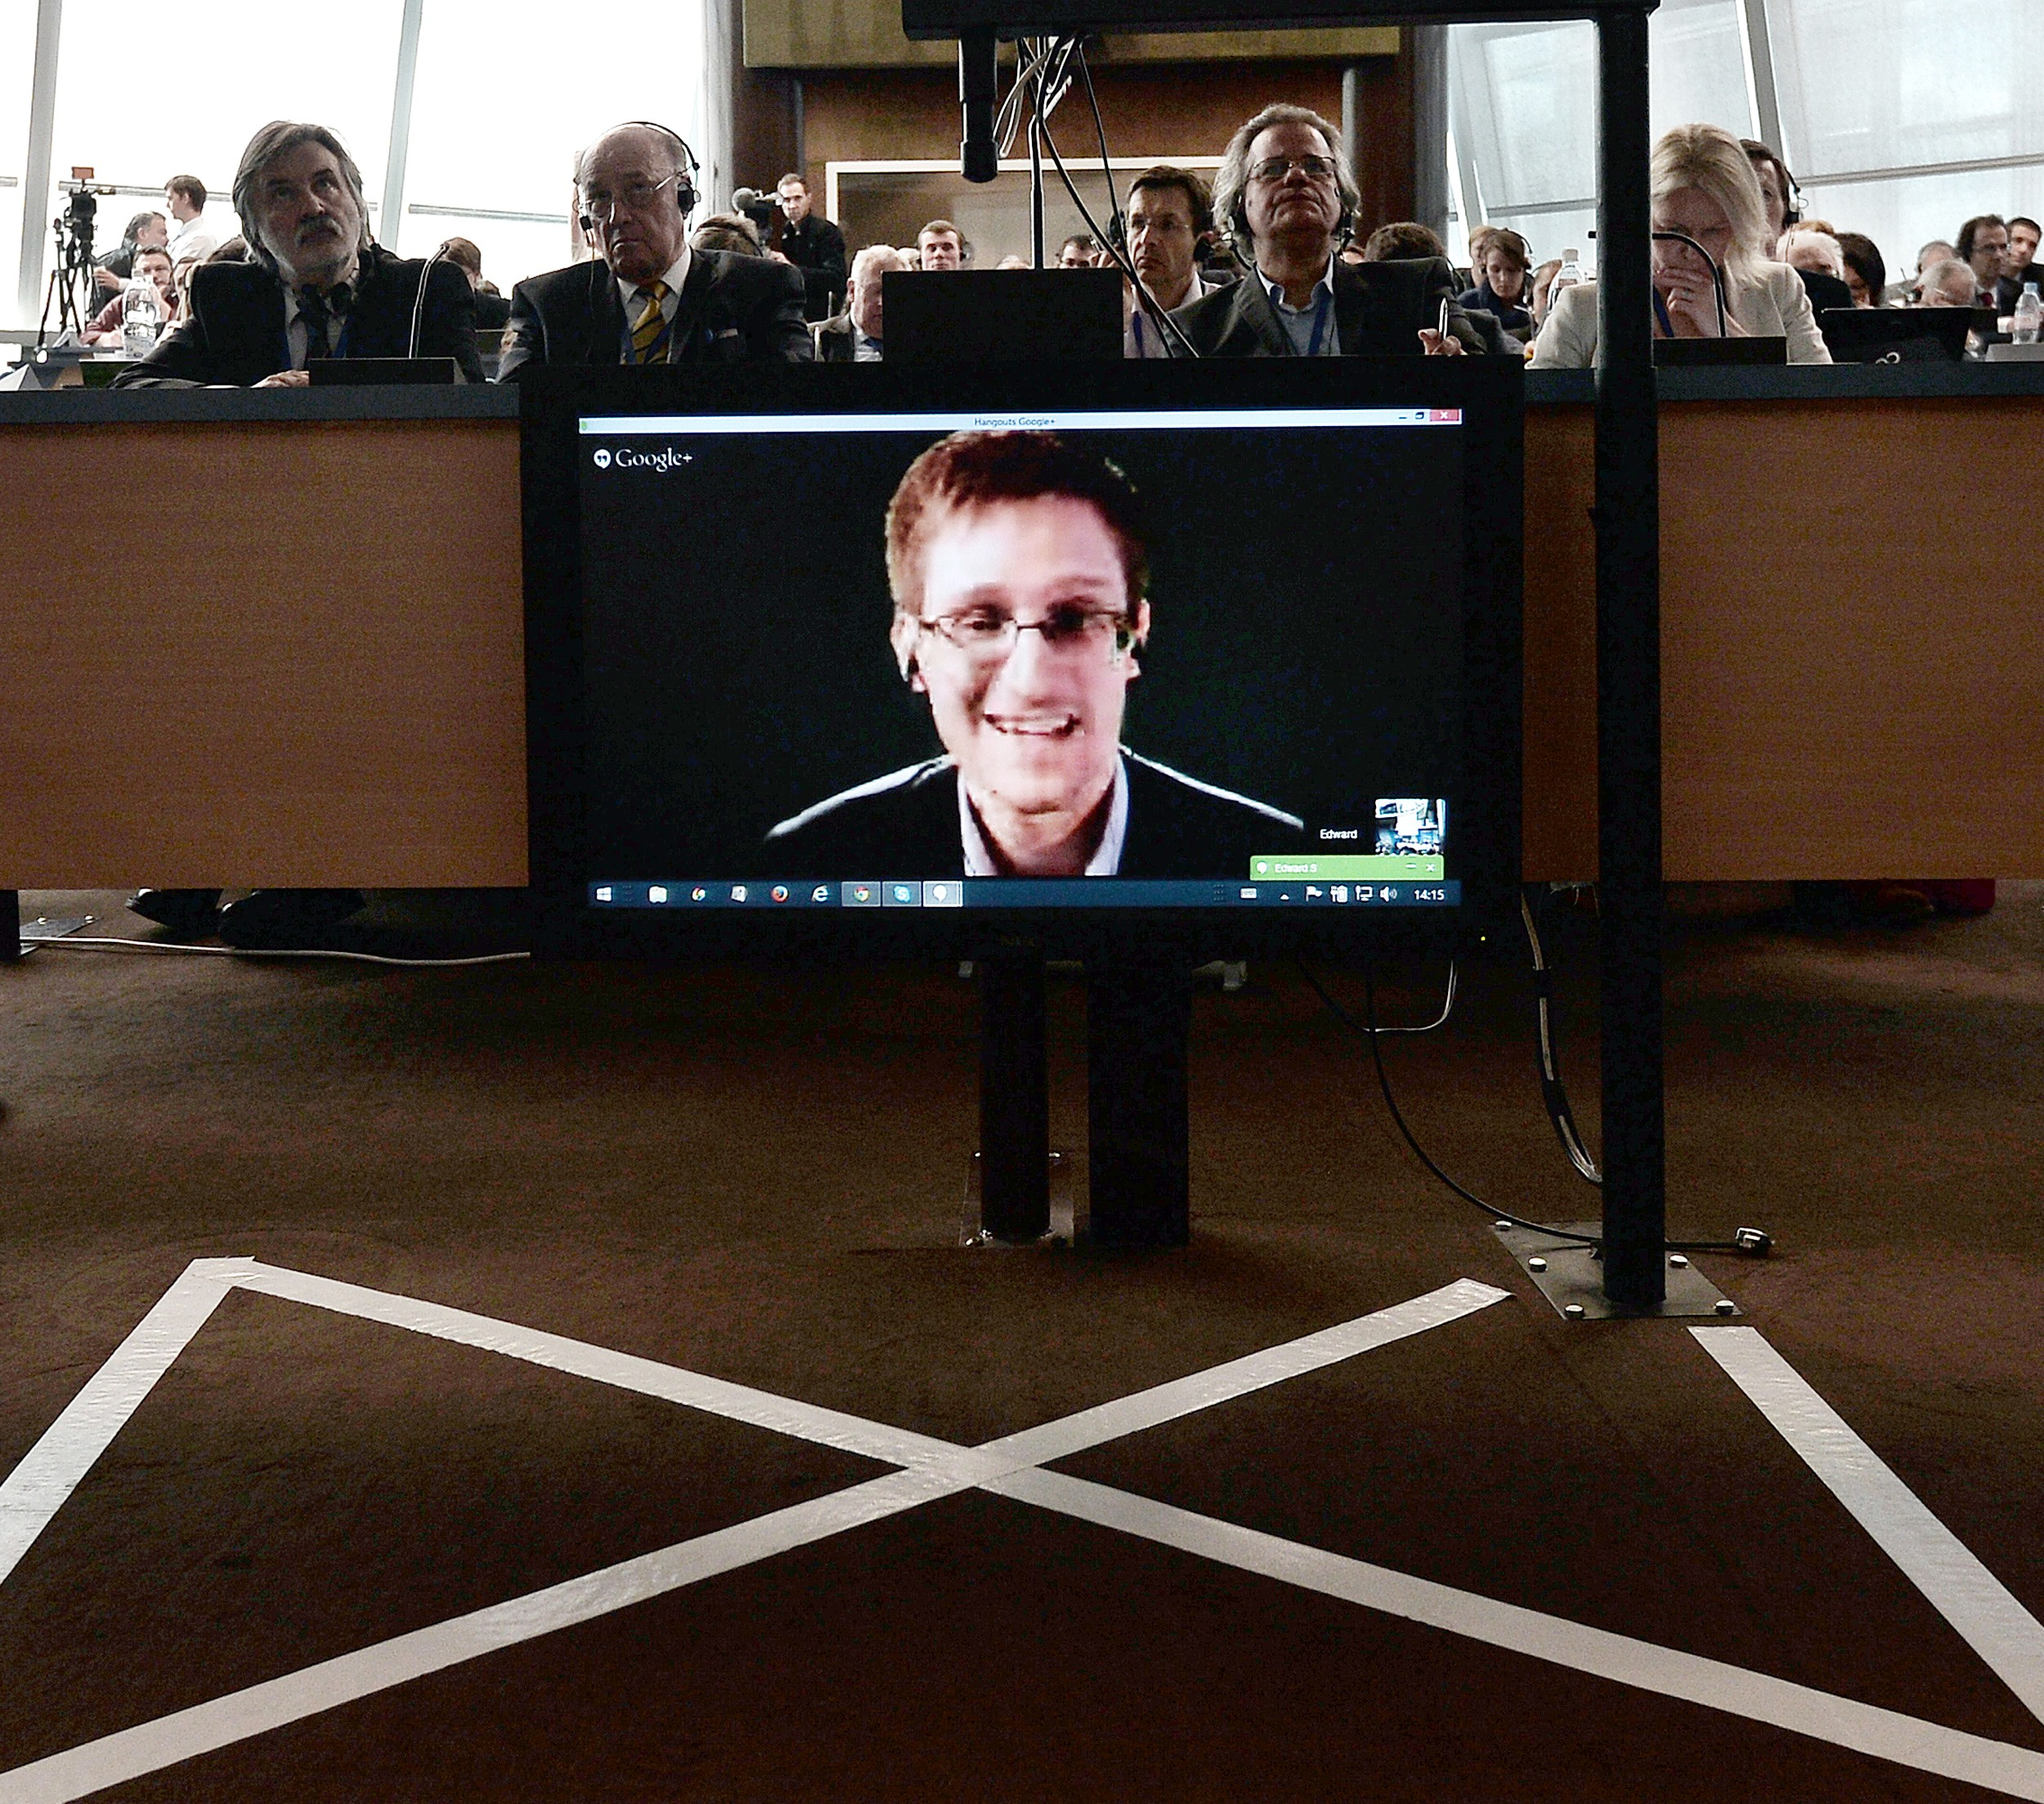 Edward Snowden, laughing from god knows where on the other side of the planet somewhere. (Photo: Getty Images)